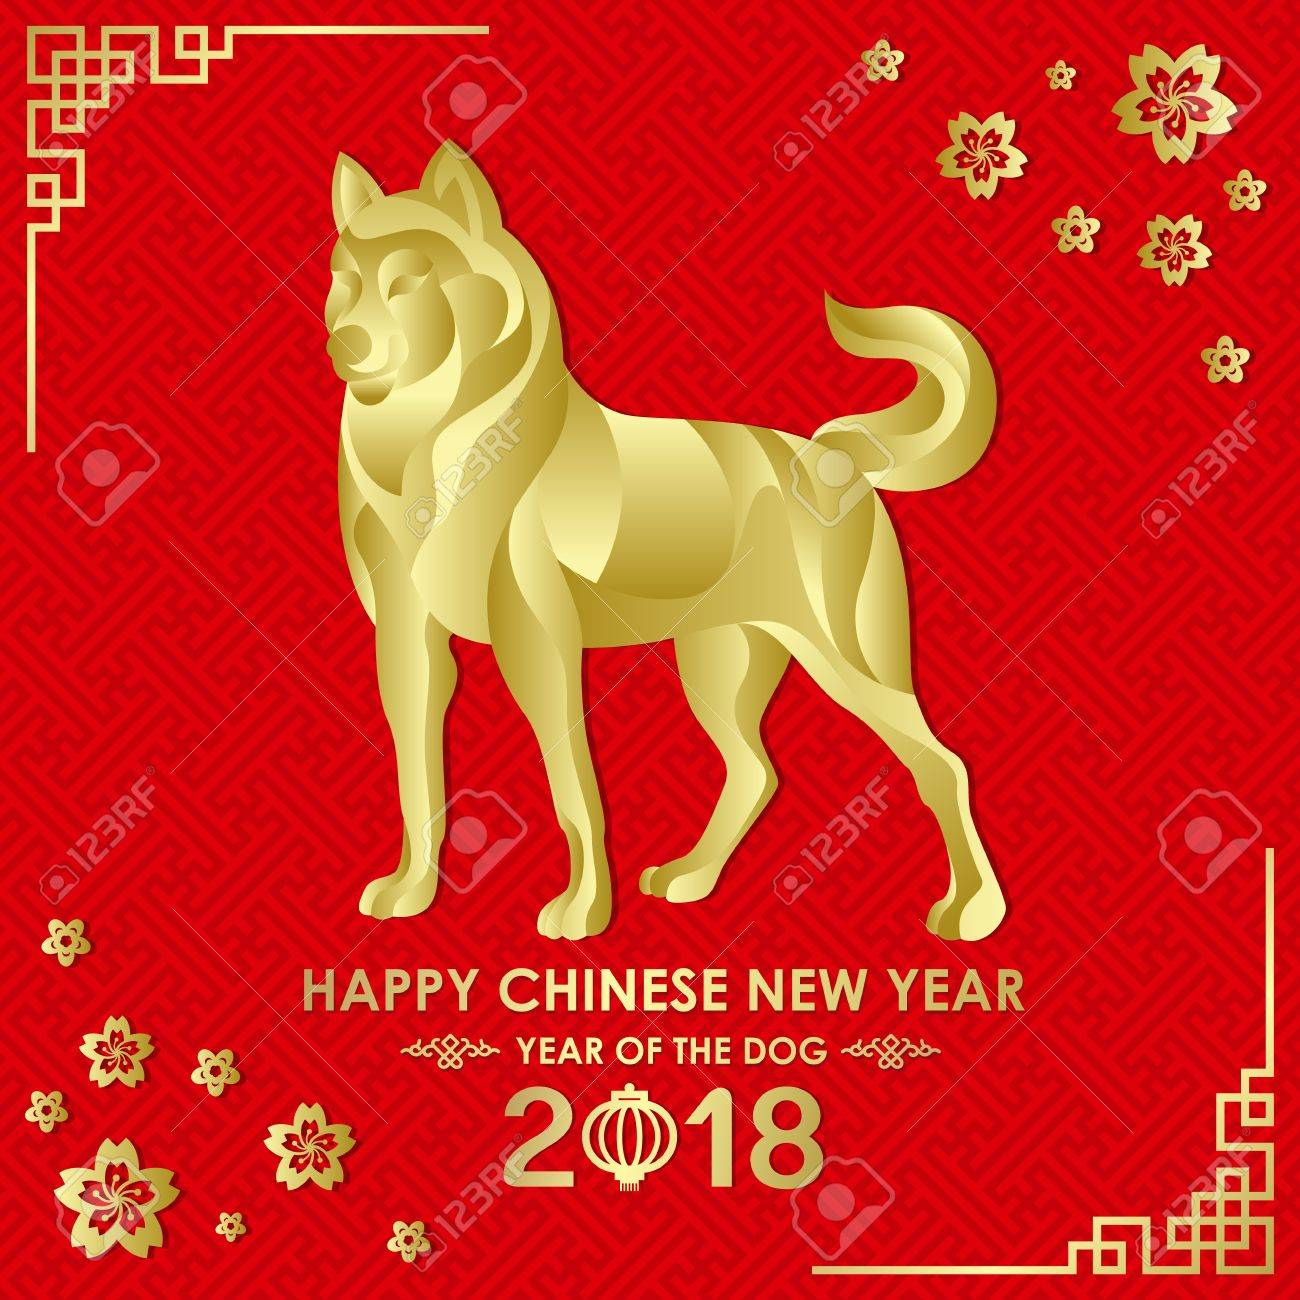 happy chinese new year 2018 card with gold dog zodiac abstract on red china parttern background